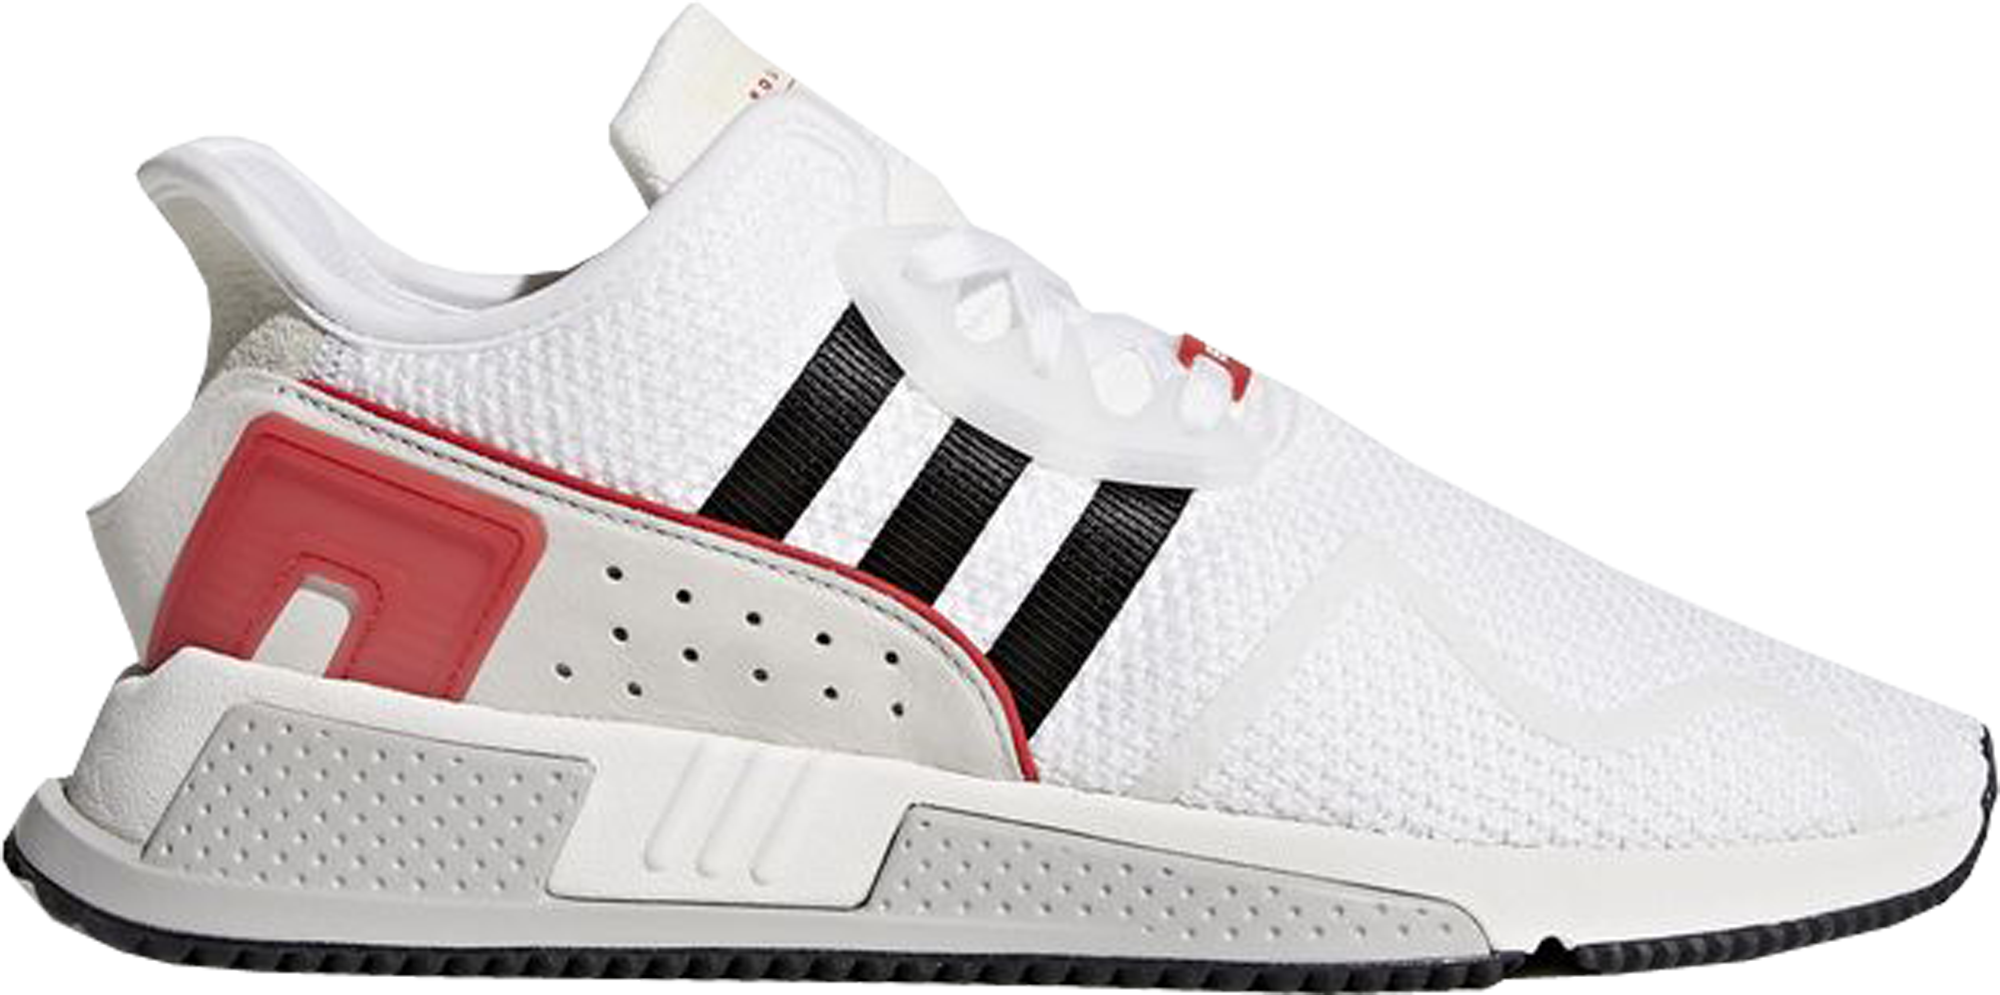 check out 8f371 d133a adidas EQT Cushion Adv White Black Scarlet